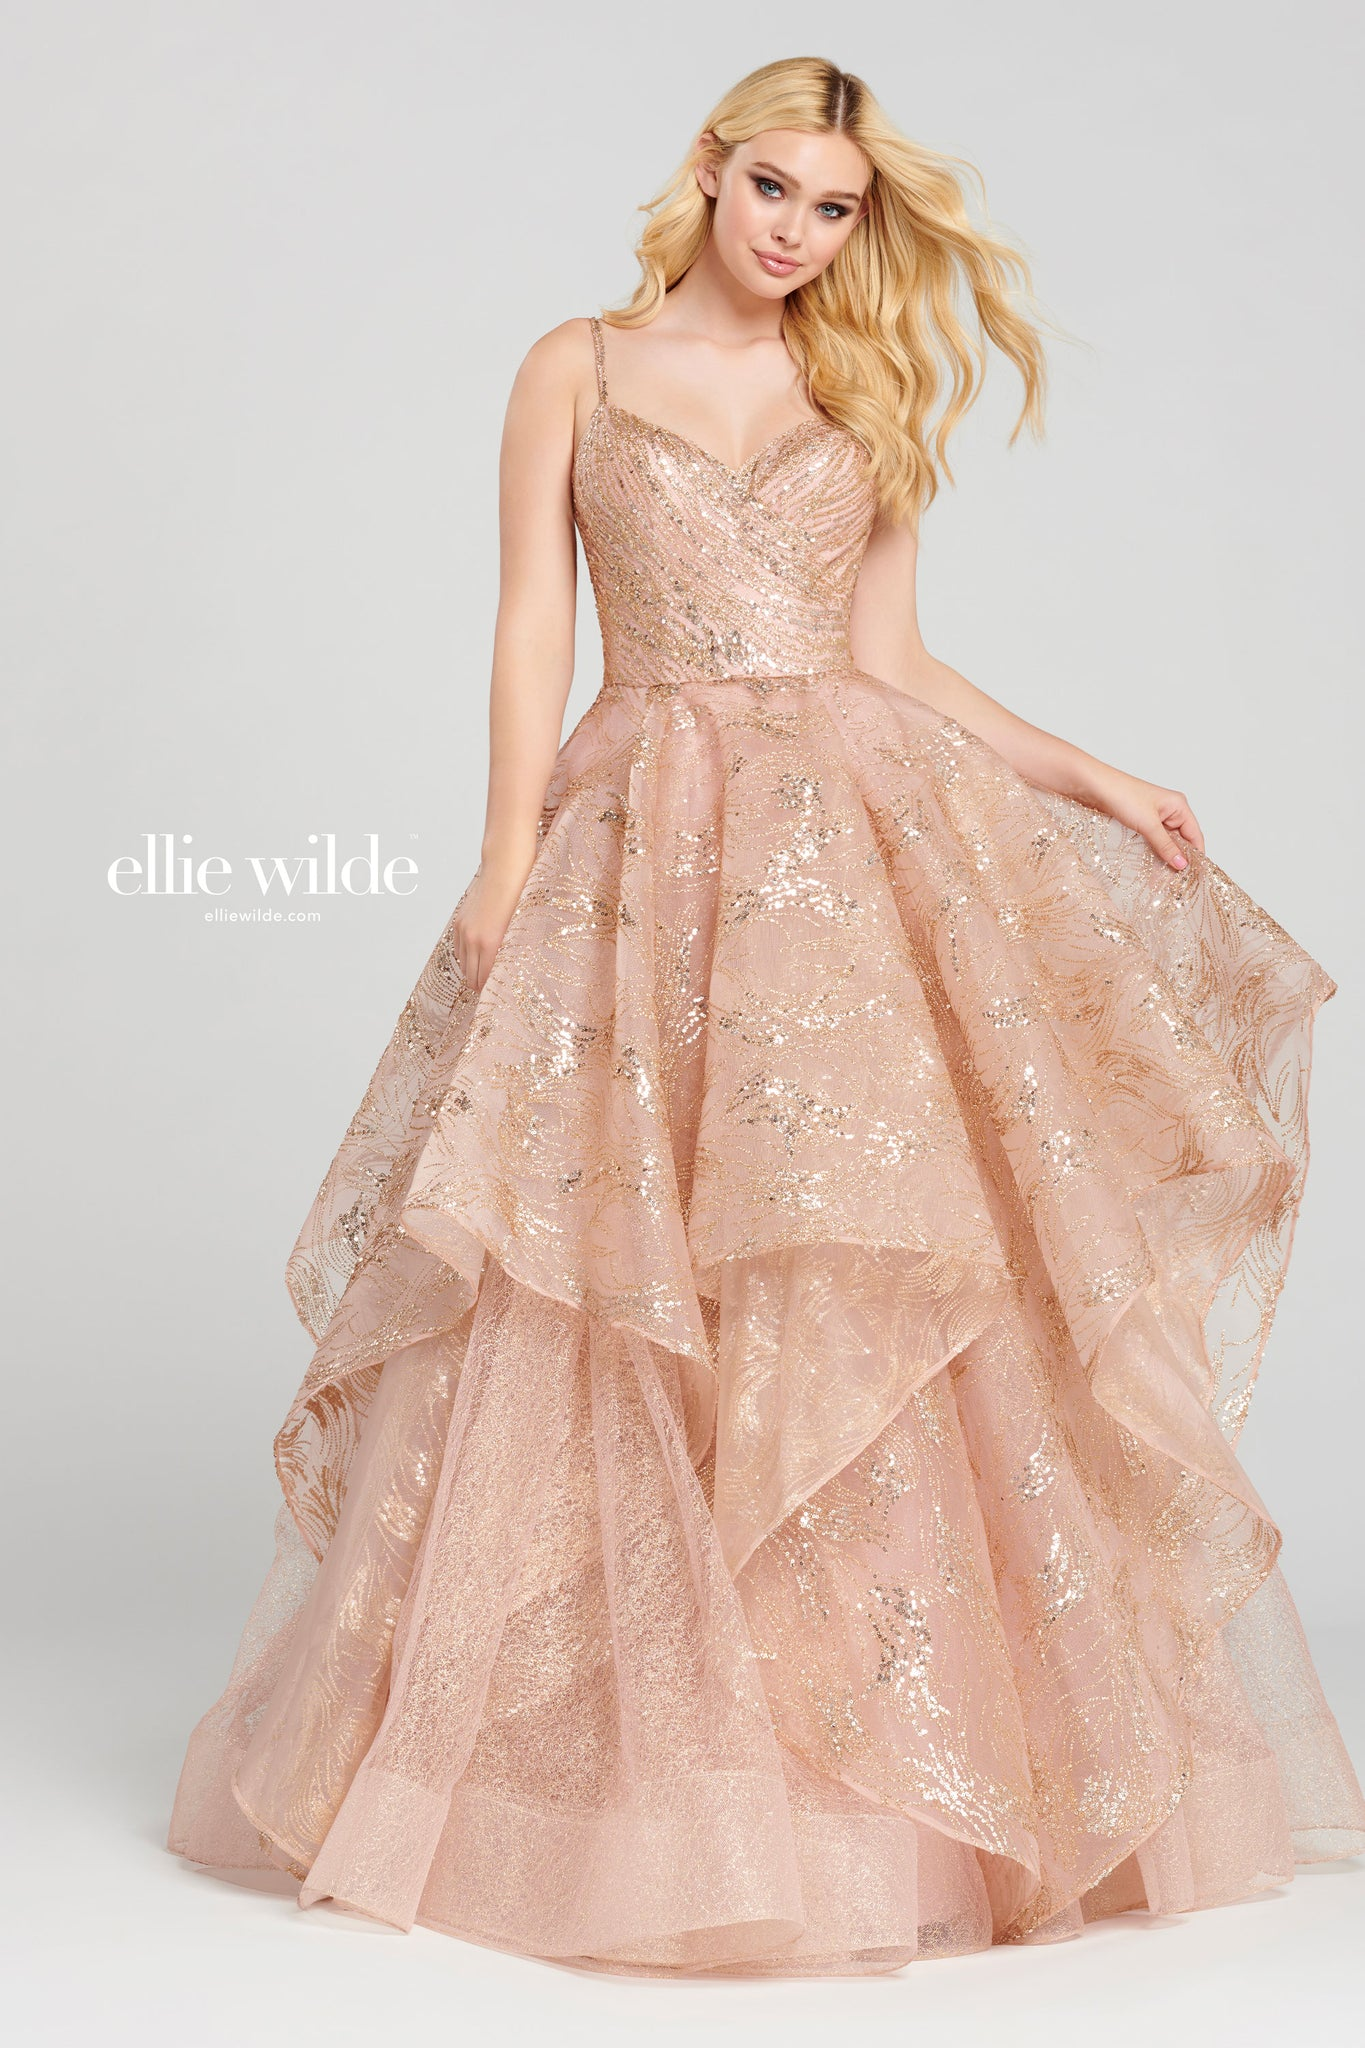 Ellie Wilde Rose Gold Ball Gown - Gissings Boutique